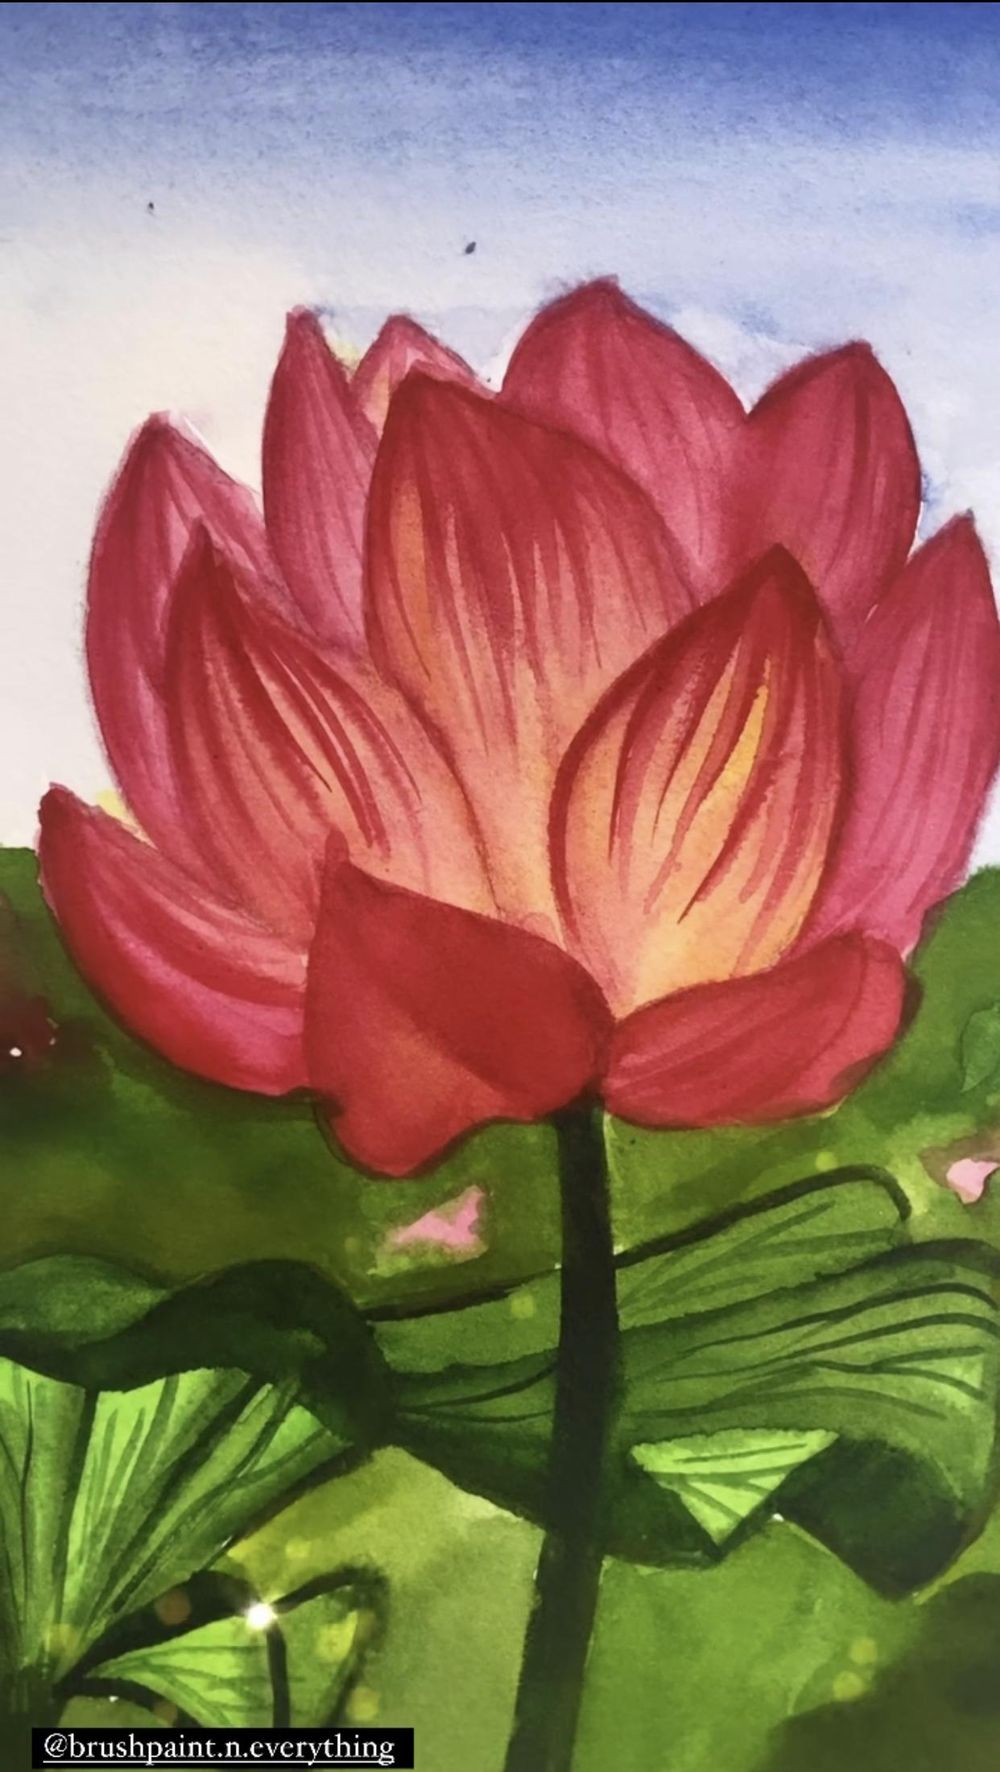 Watercolor lily and Lotus - image 2 - student project